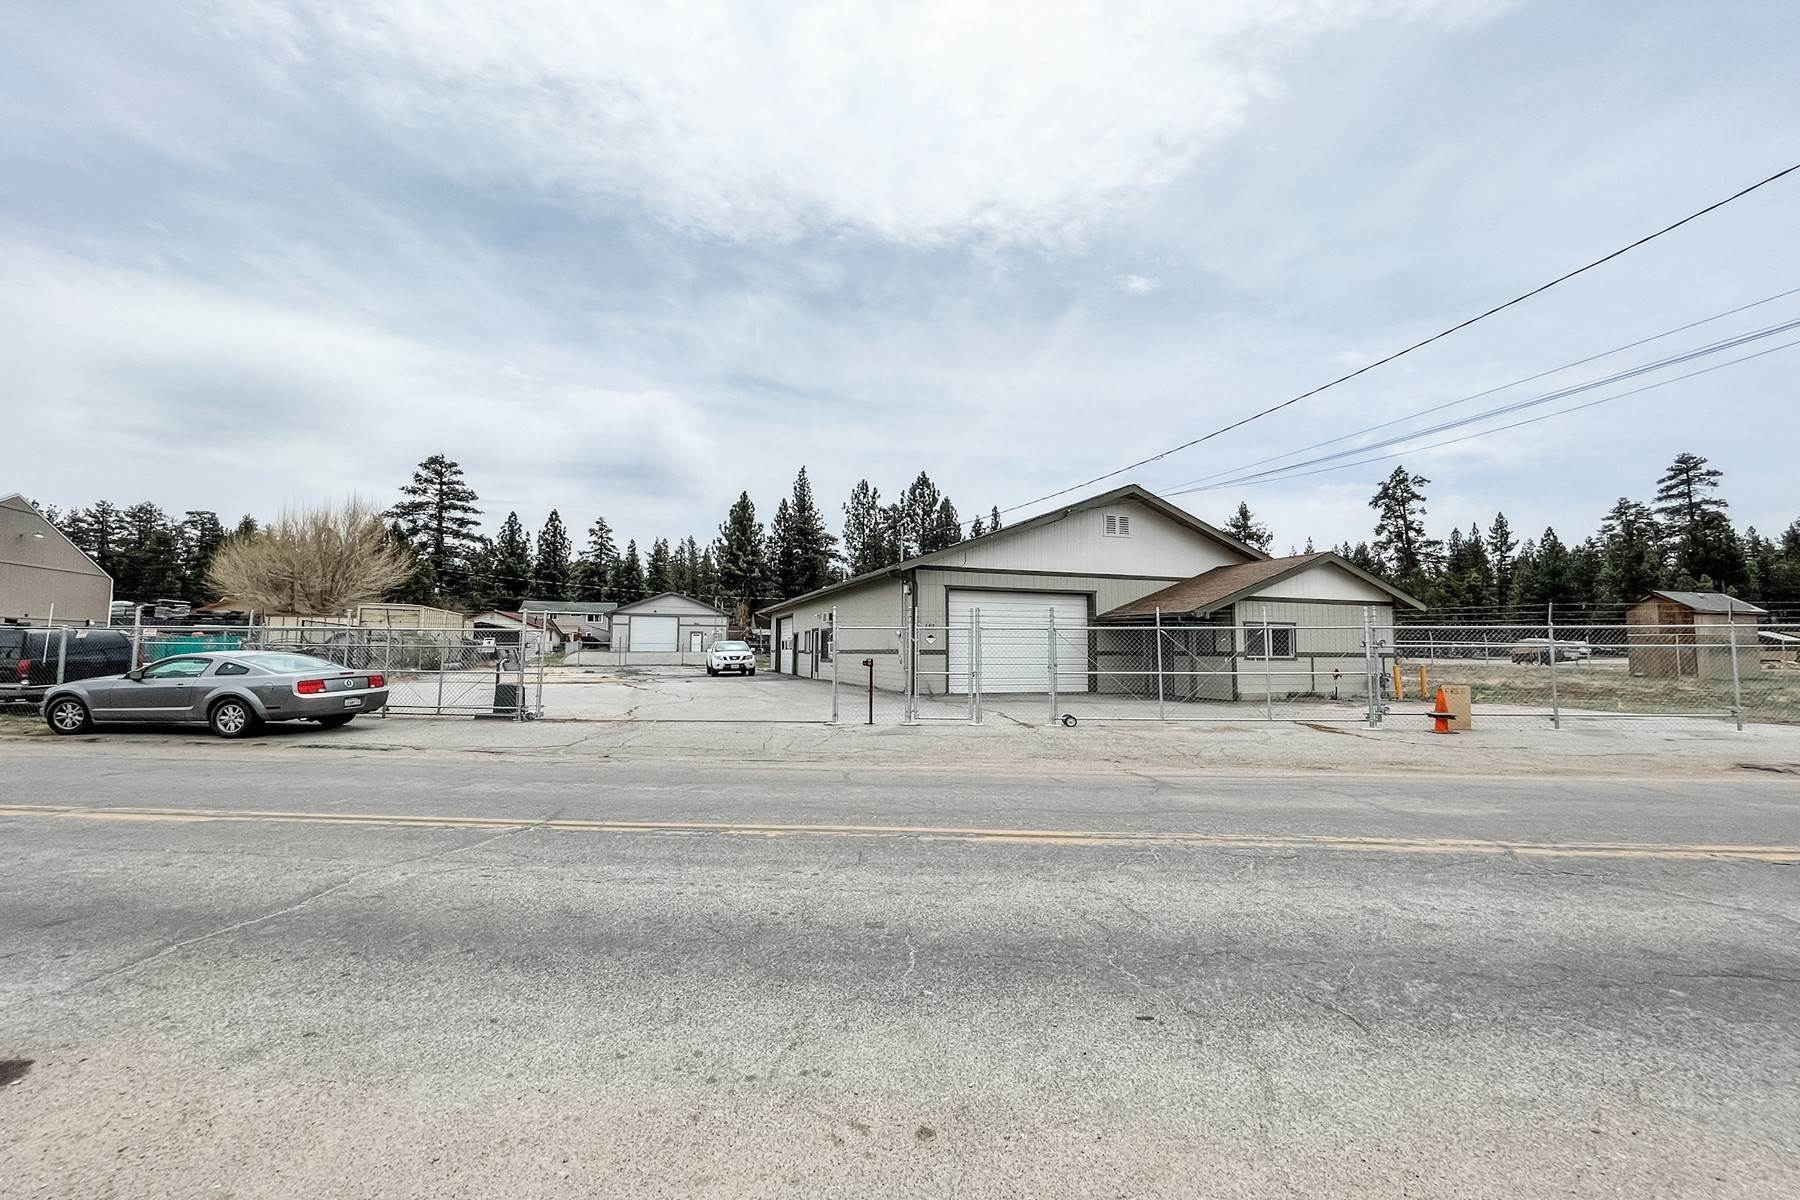 Property for Sale at 612 Valley Boulevard, Big Bear City, California, 92314 612 Valley Boulevard Big Bear City, California 92314 United States